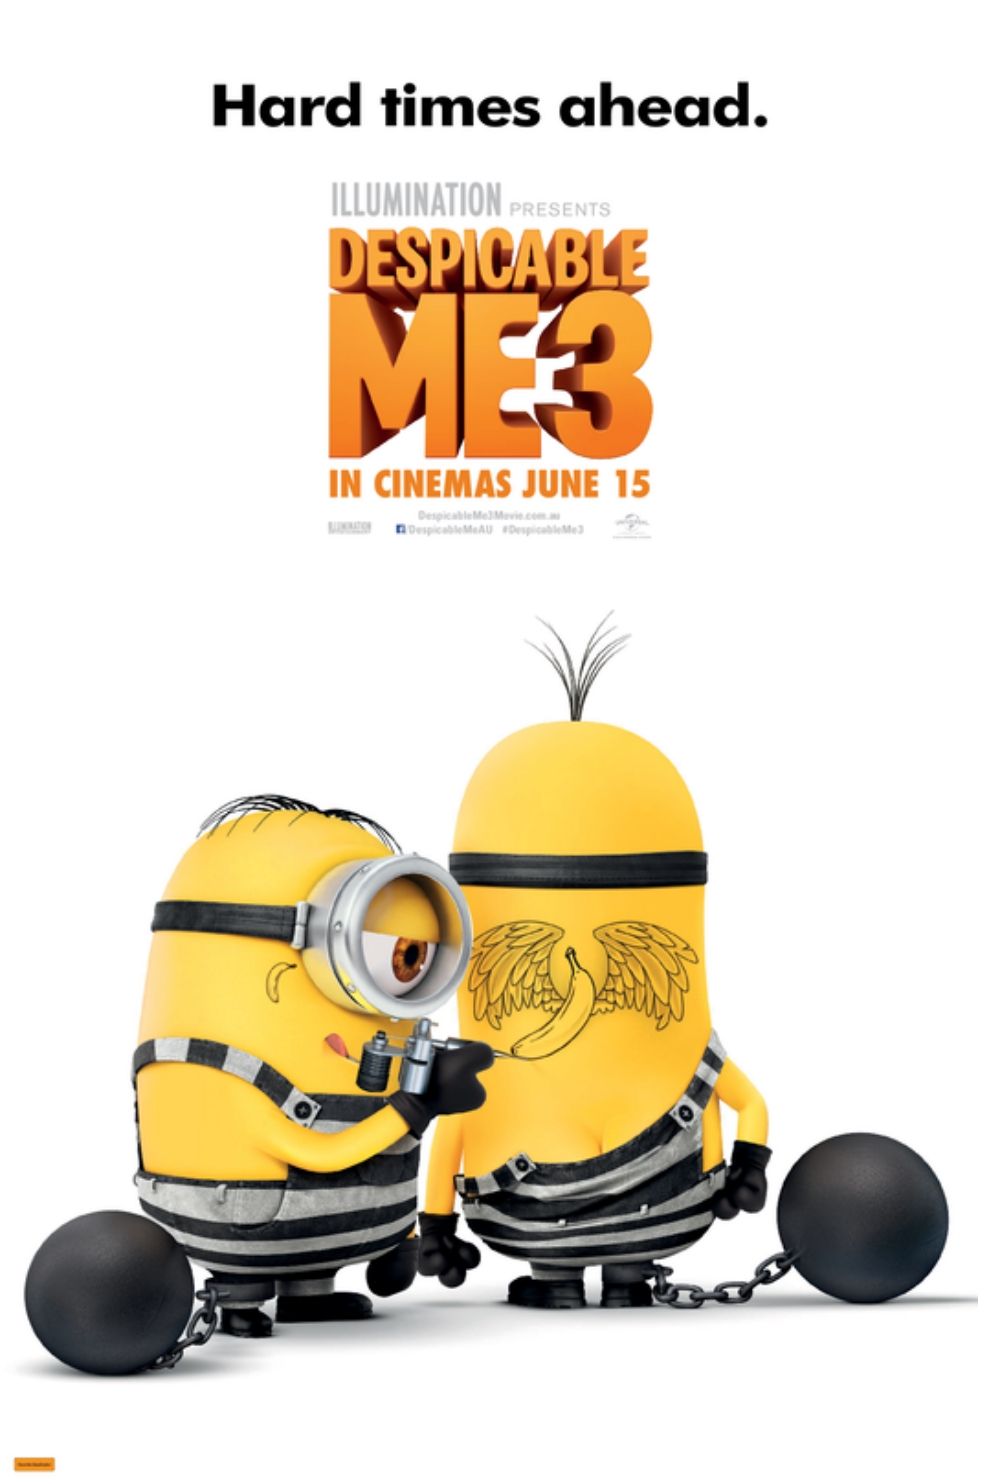 Despicable Me 3 Teaser Trailer Prime video direct video distribution made easy. despicable me 3 teaser trailer